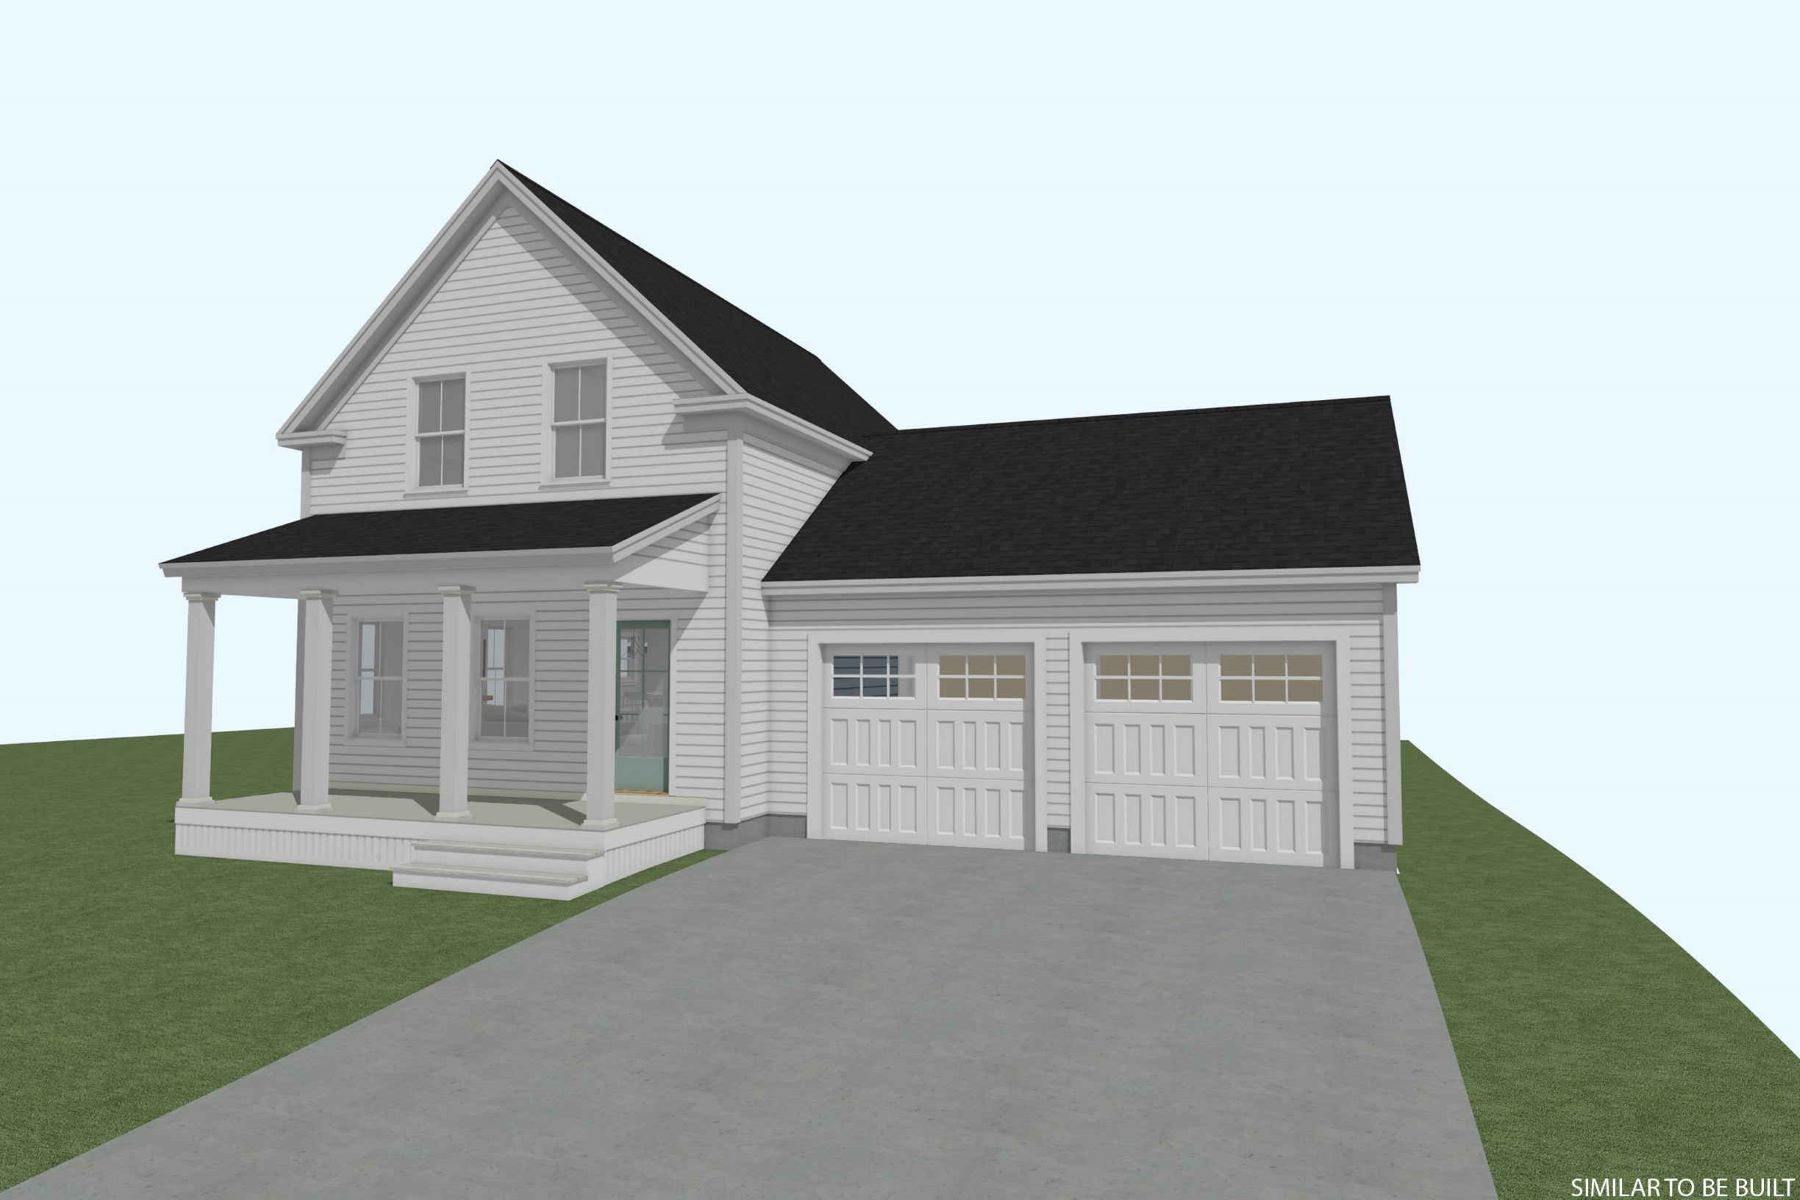 Single Family Homes for Sale at Nearly Complete 3 Bedroom Colonial in Wells 83 Edgewood Road, Wells, Maine 04090 United States